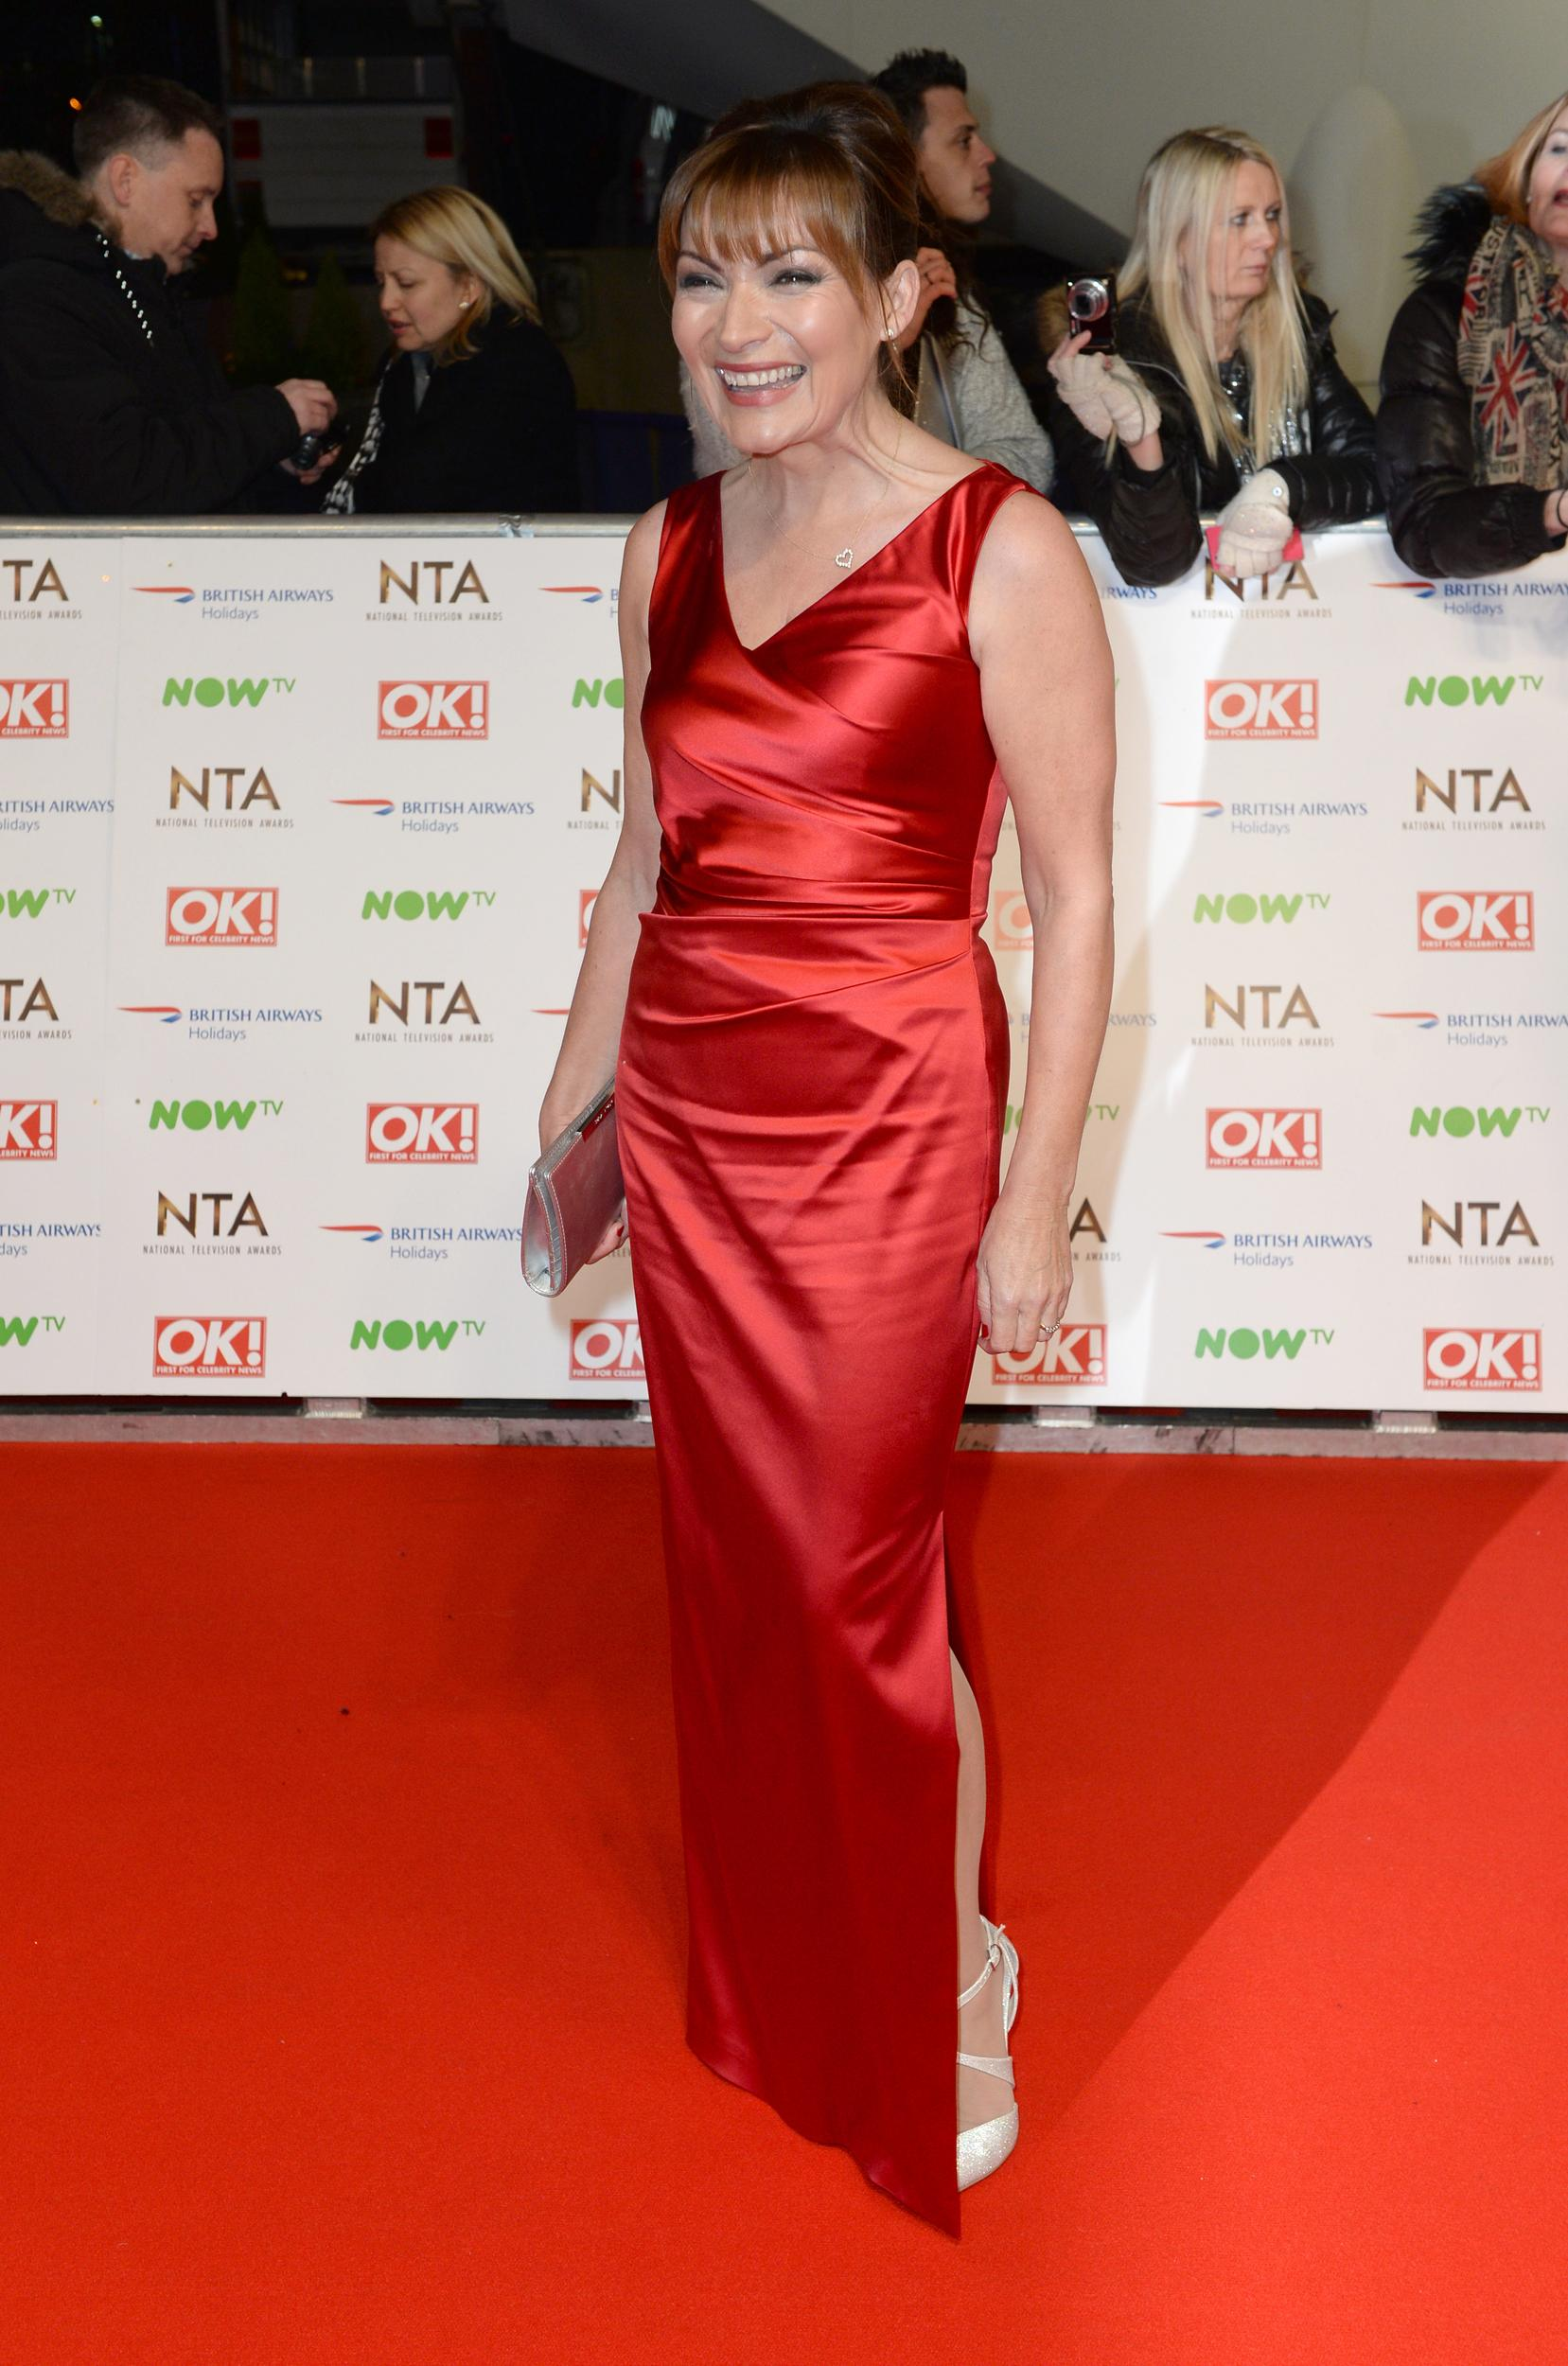 Lorraine Kelly attending the National Television Awards 2016 at the O2 Arena, London.Copyright Doug Peters EMPICS Entertainment